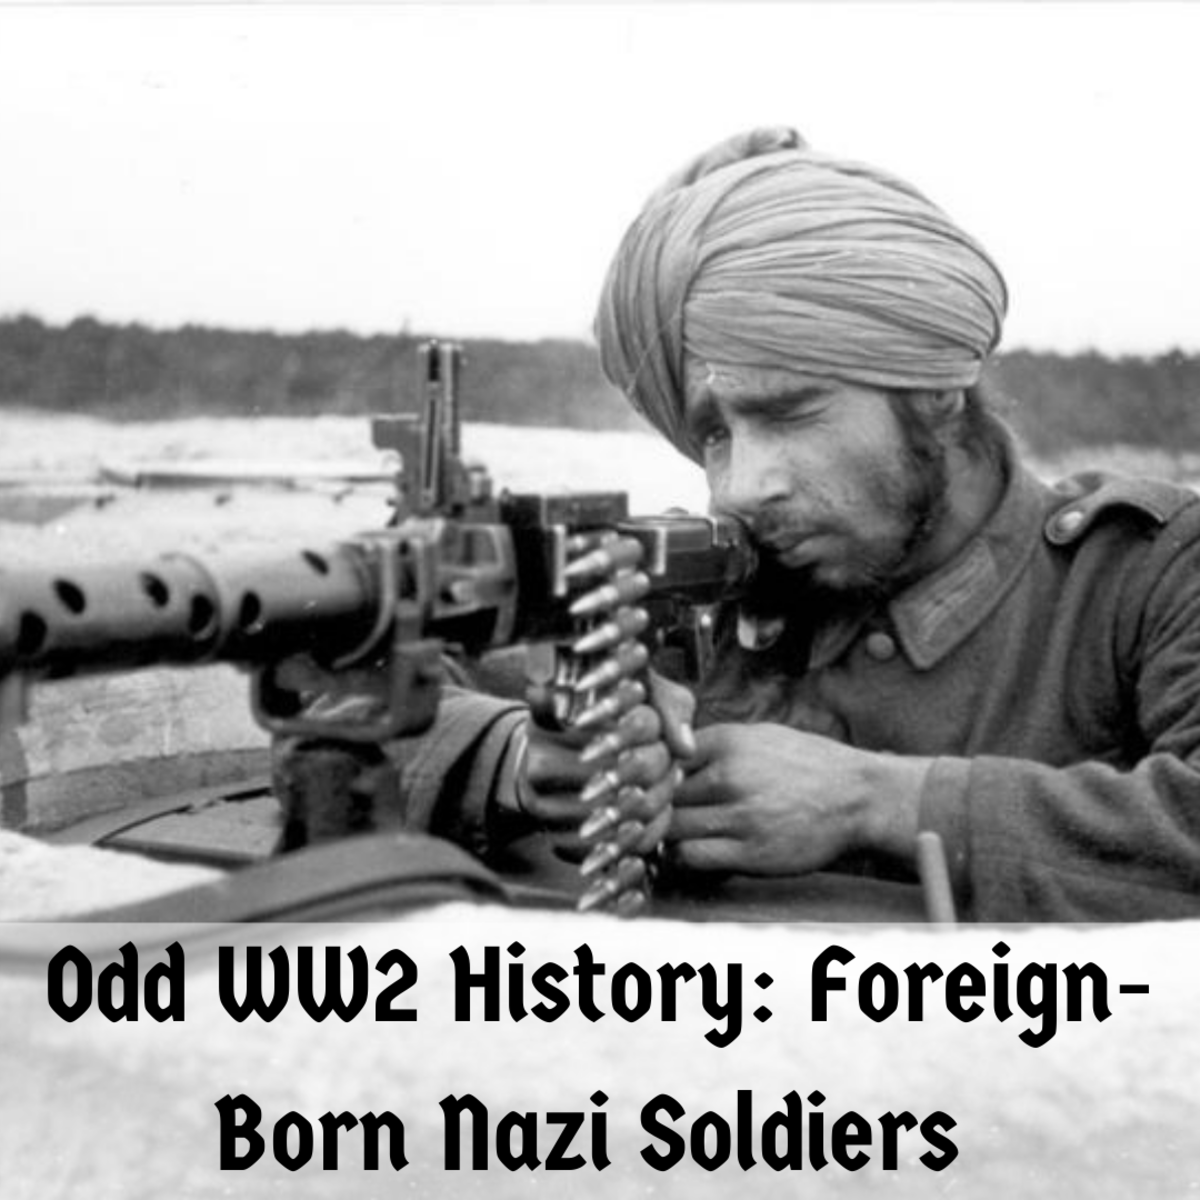 Learn all about the foreigners who fought for Nazi Germany in World War II.